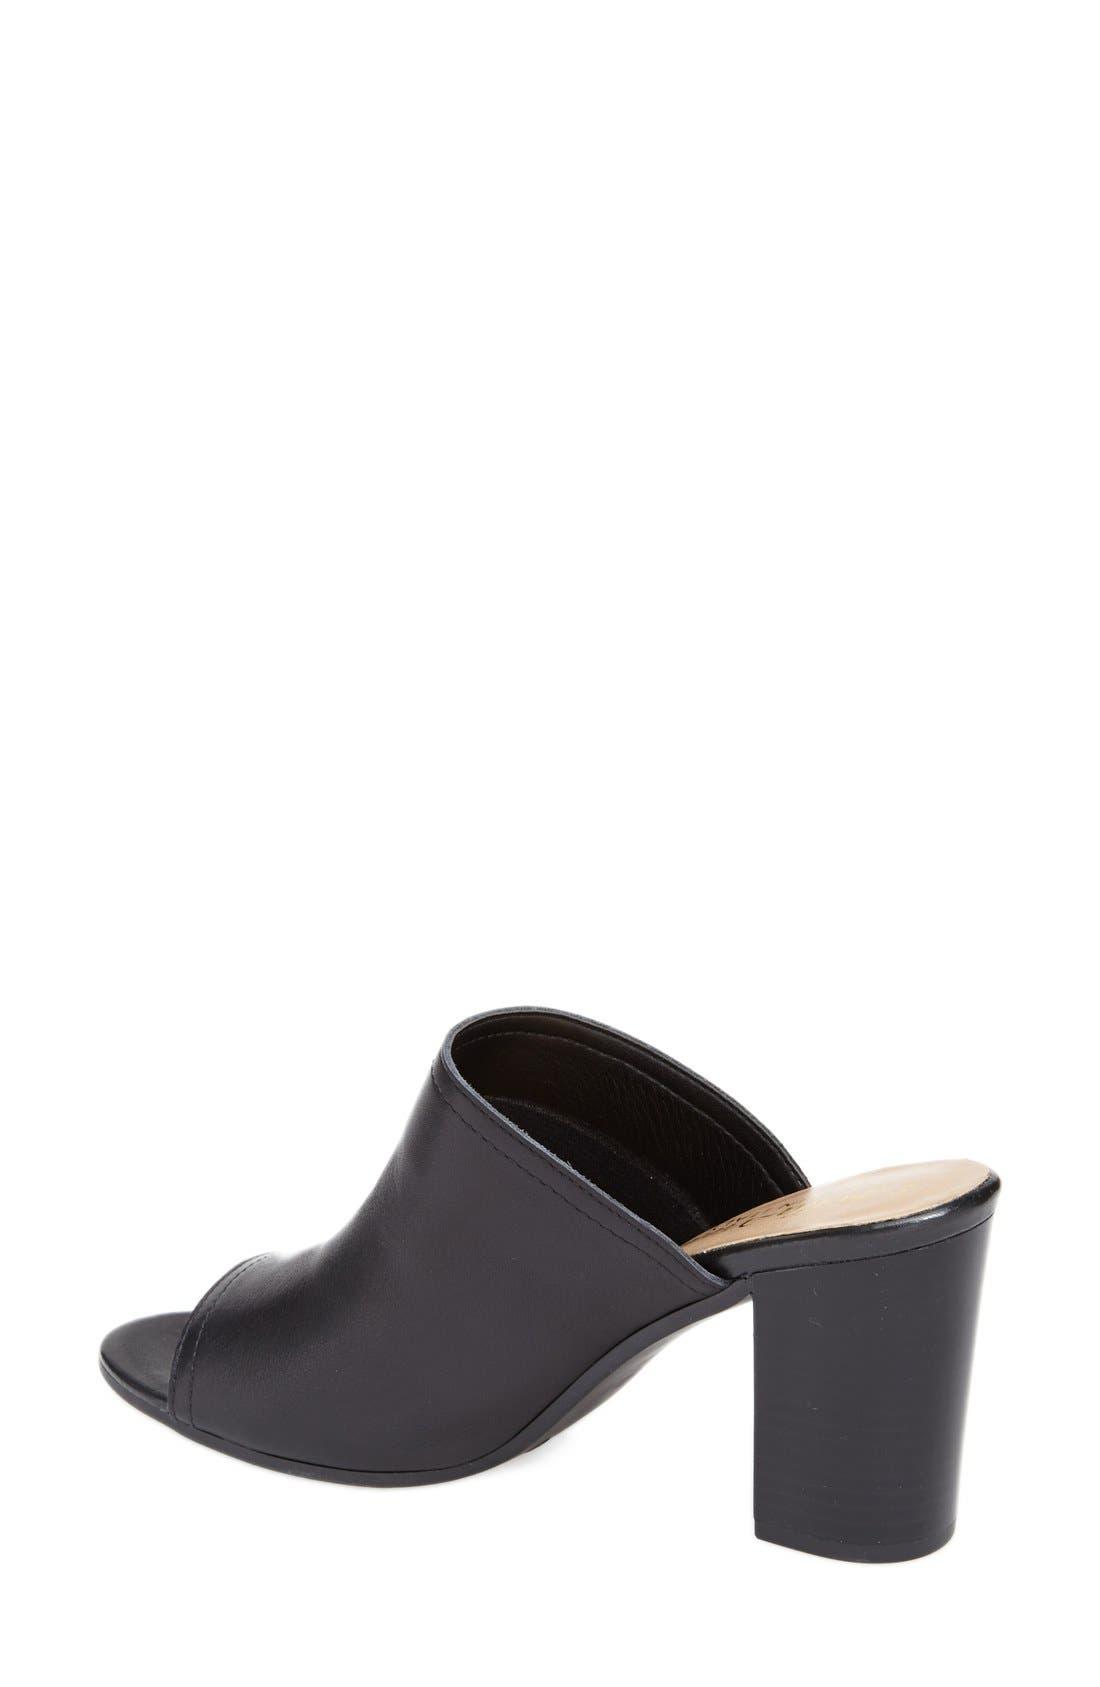 BELLA VITA, 'Arno' Leather Mule, Alternate thumbnail 4, color, 001